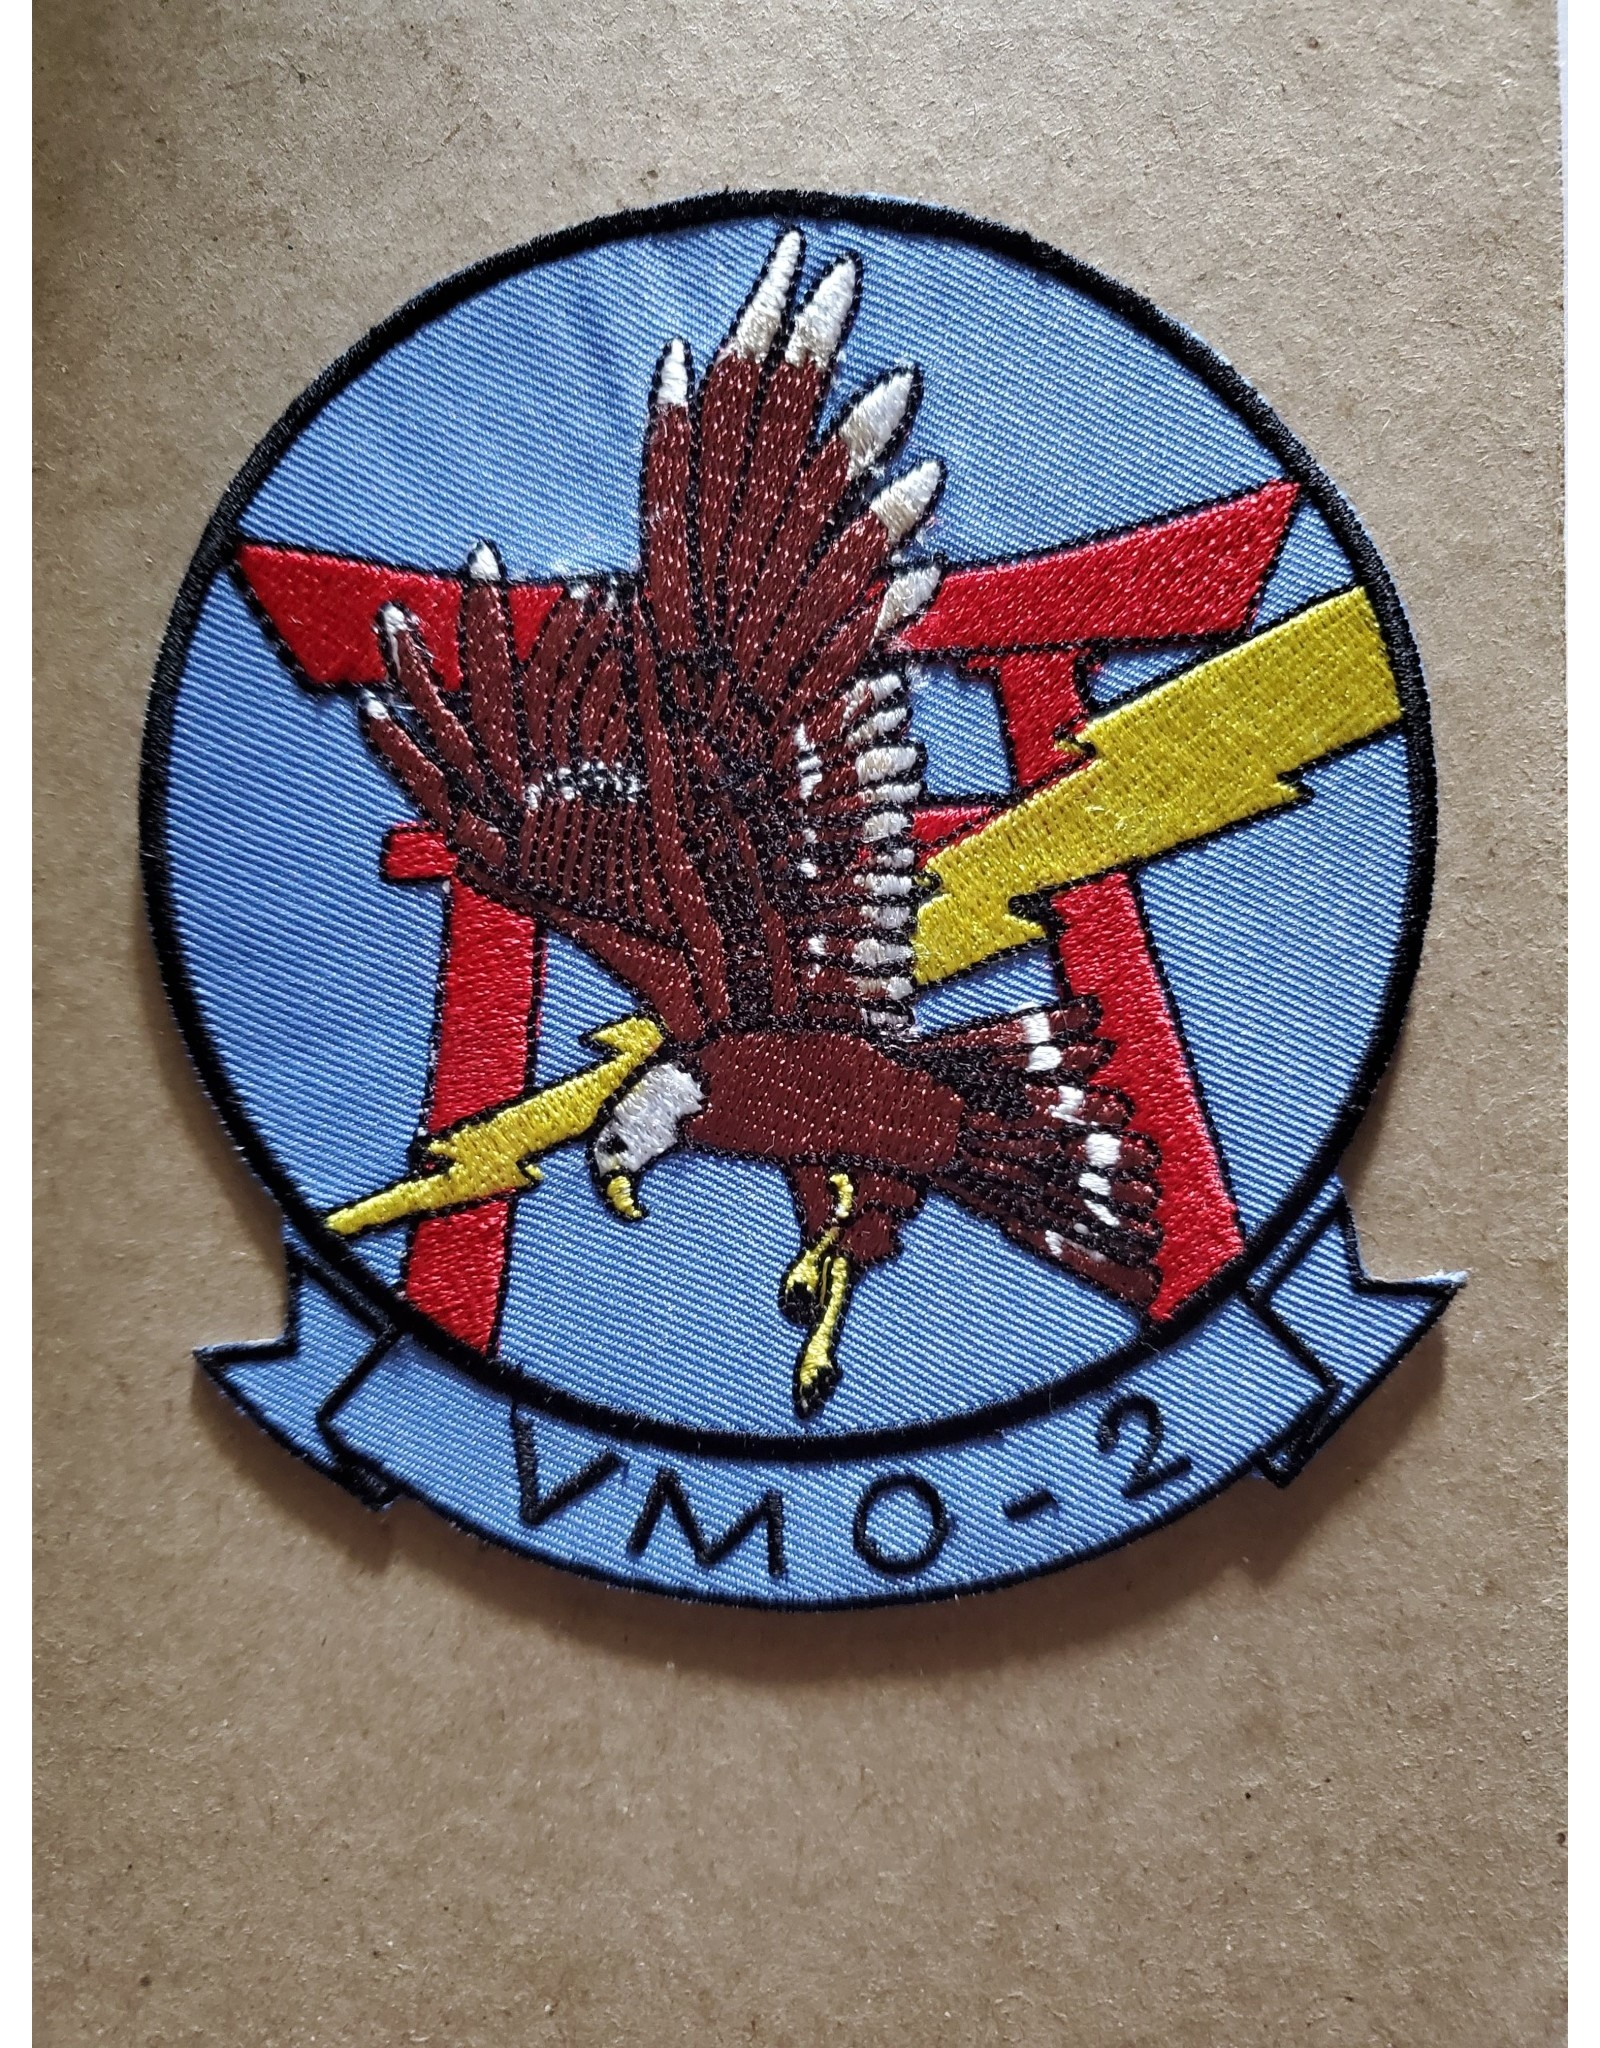 FWAM VMO-2 Eagle (32), patch